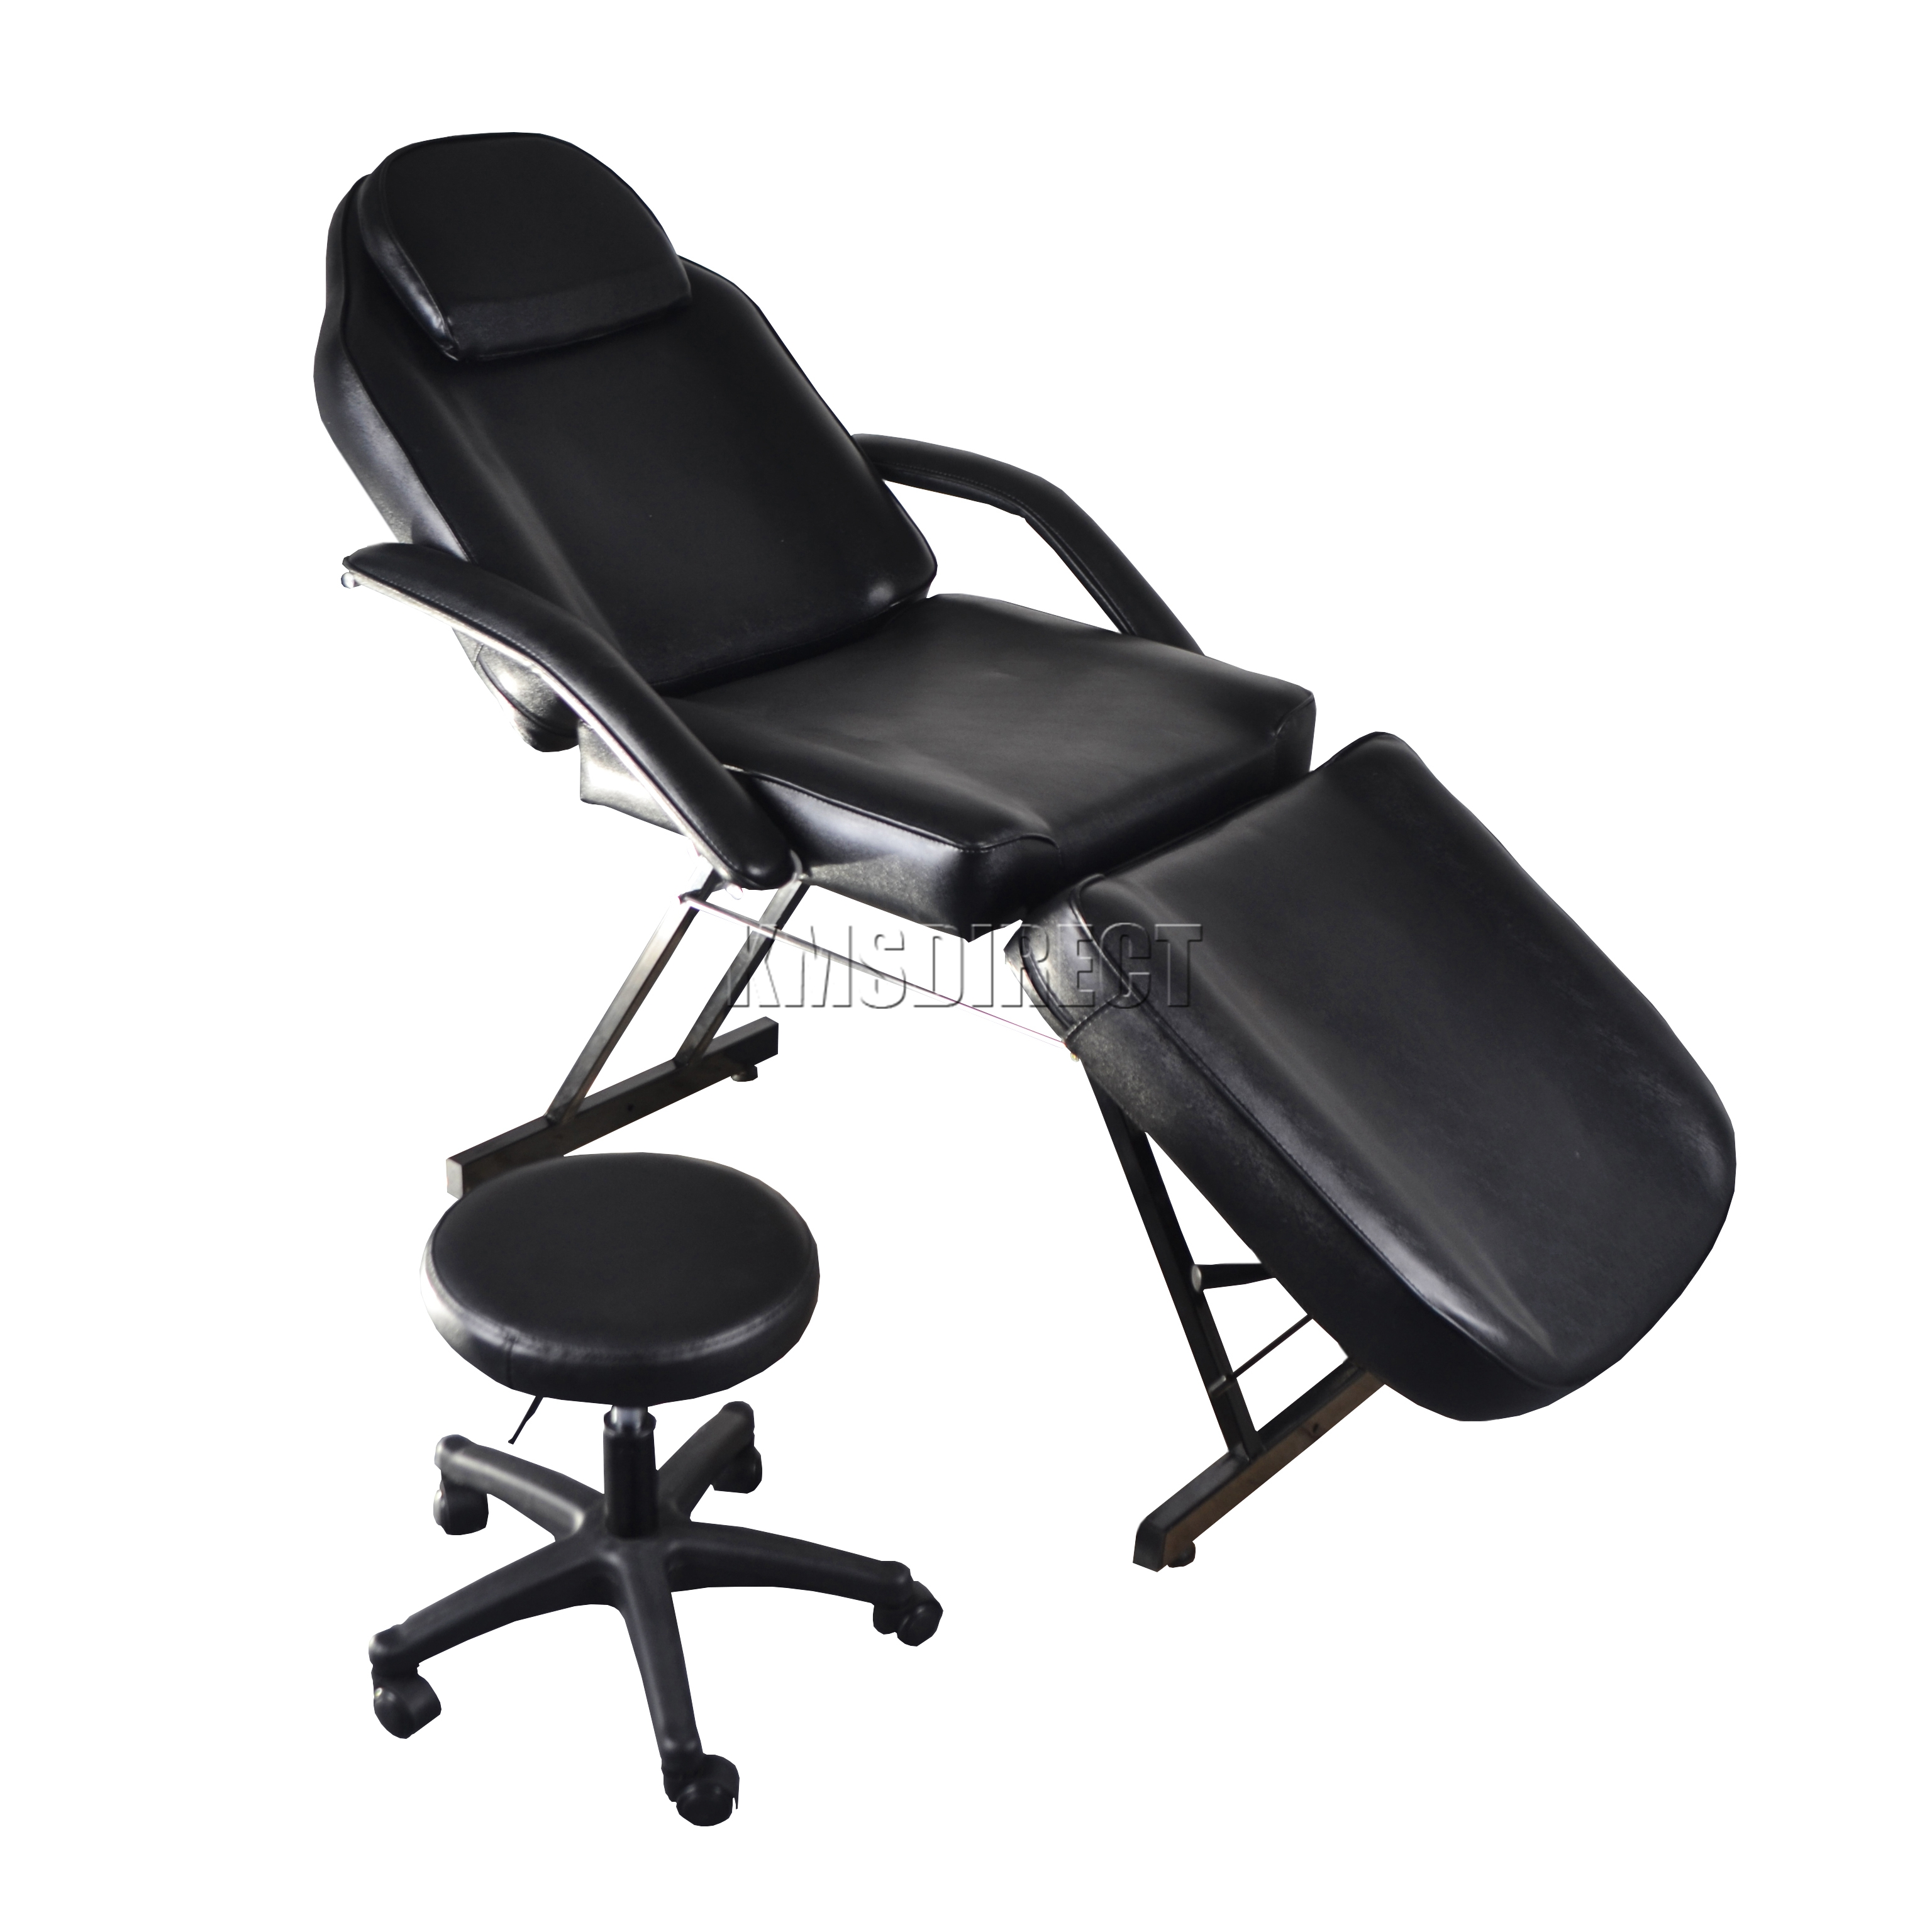 Massage Therapist Chair Foxhunter Beauty Salon Chair Massage Table Tattoo Therapy